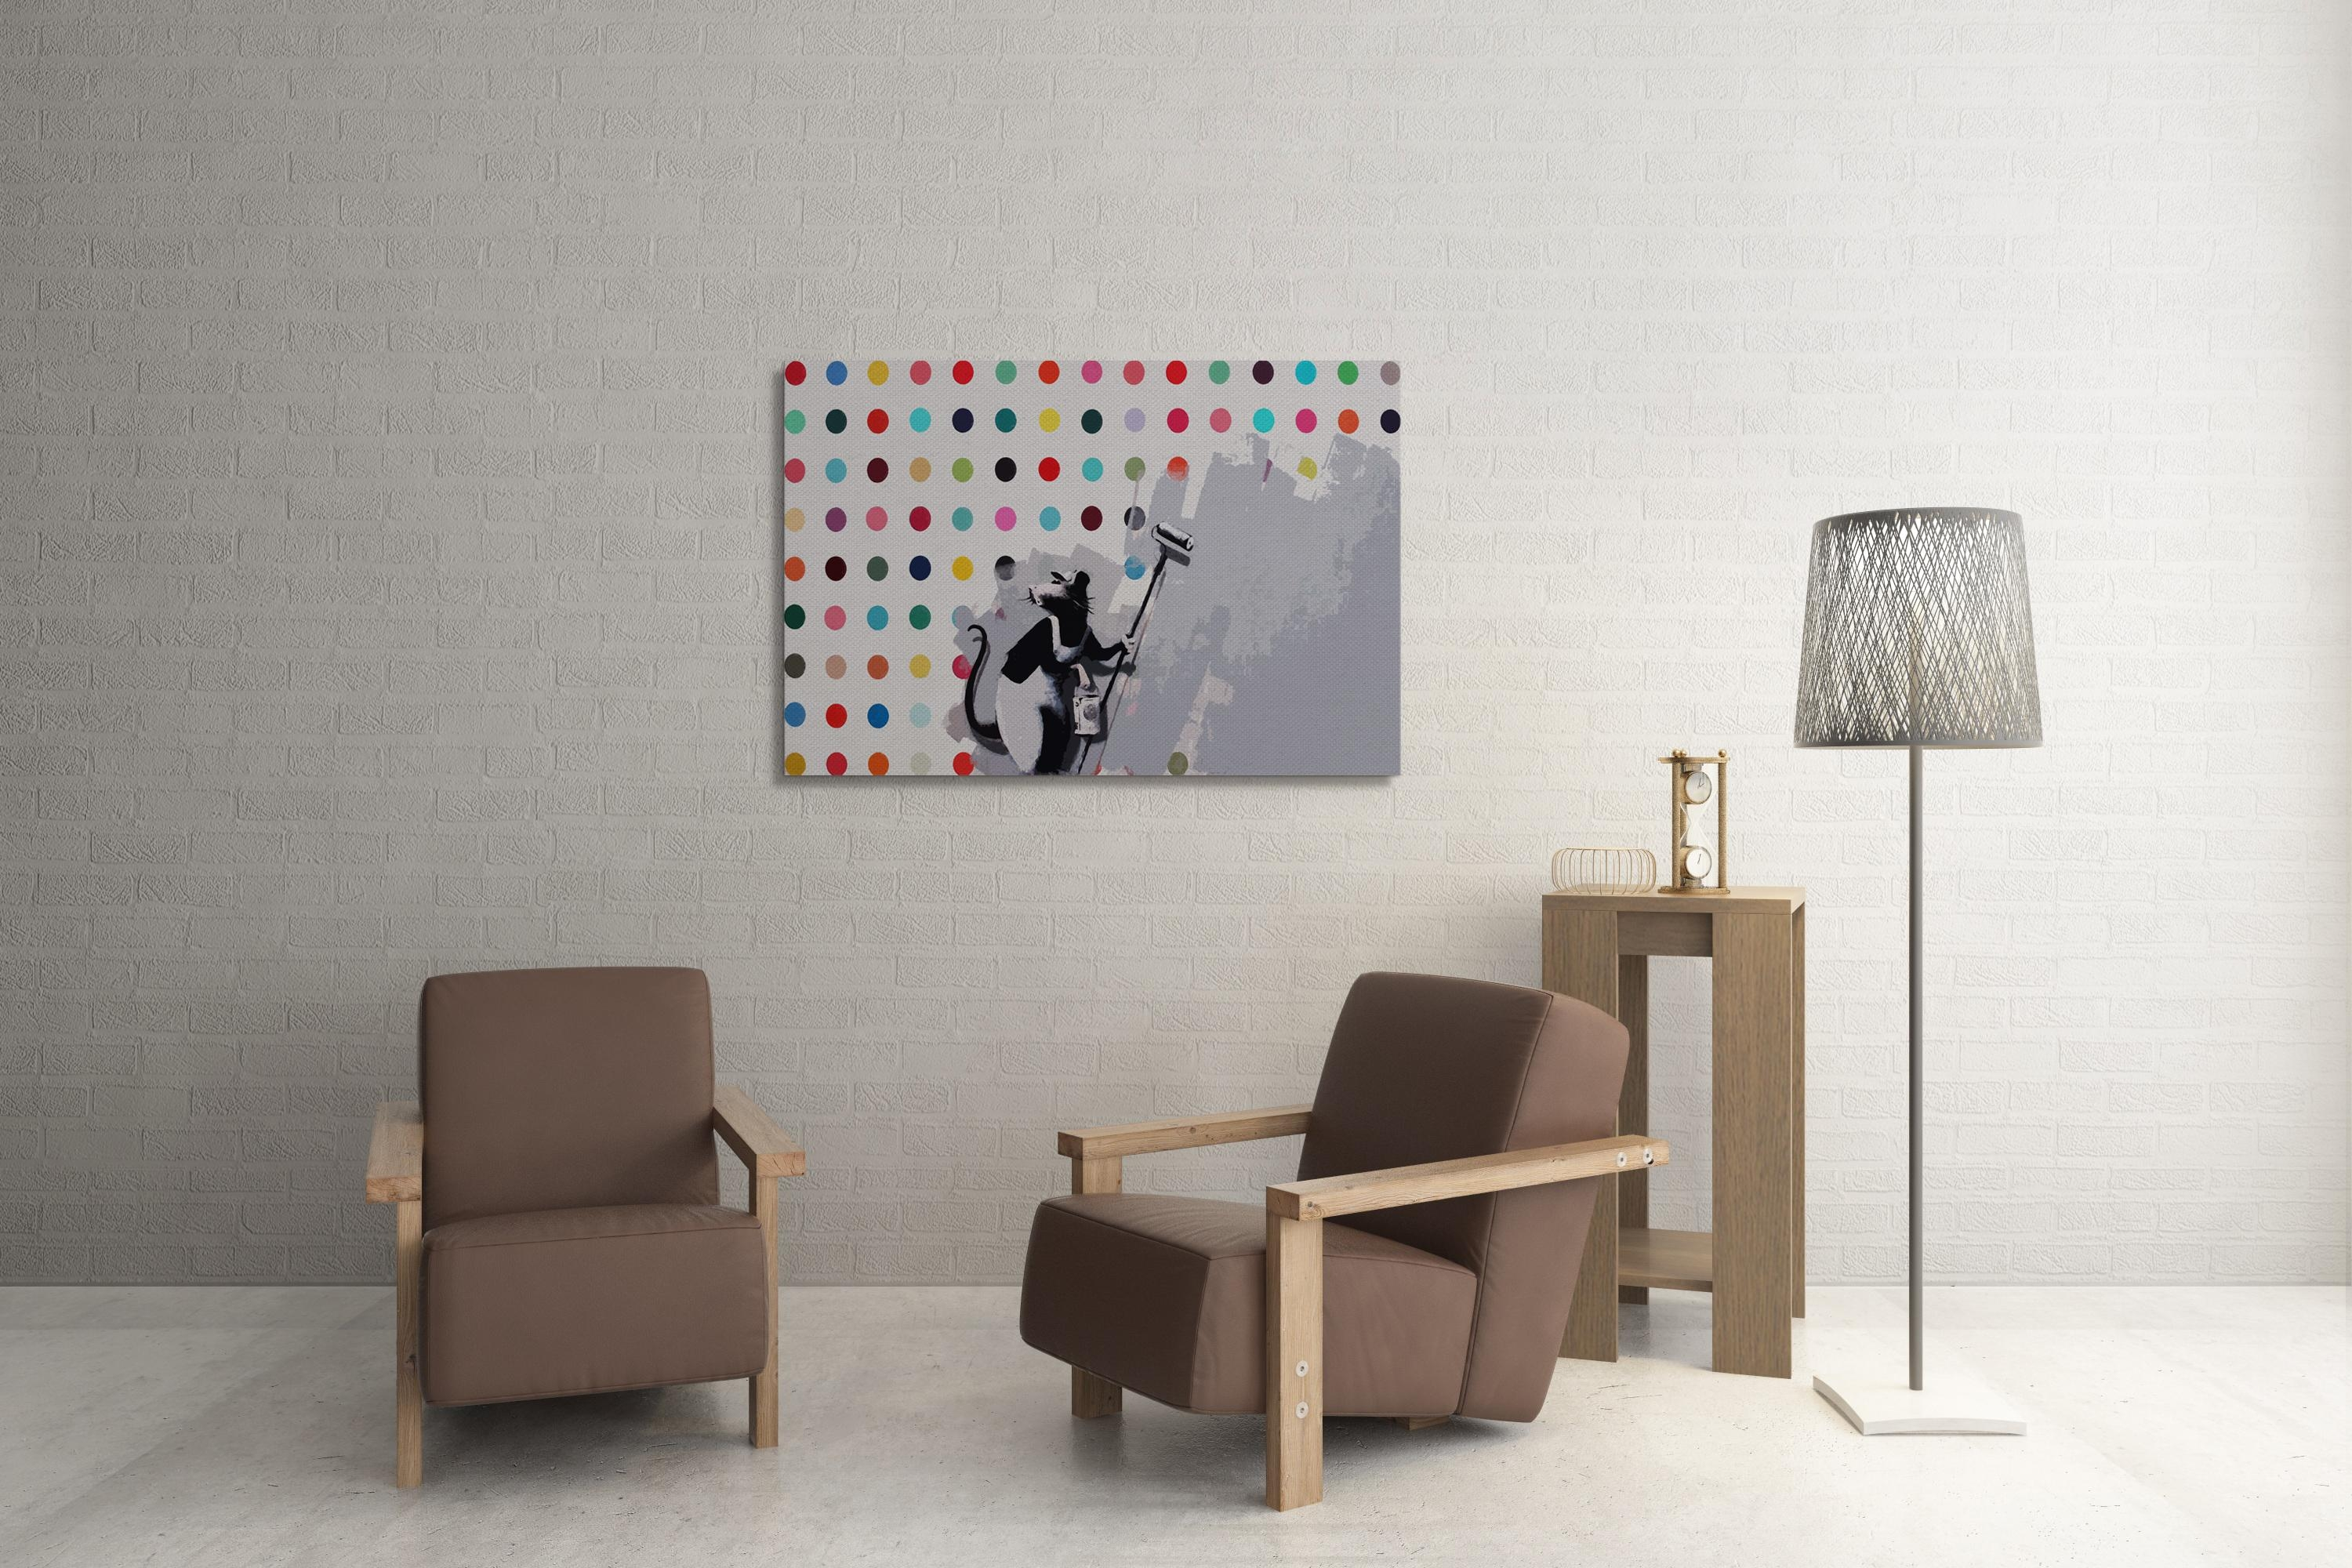 Banksy Dots Rat Canvas Wall Art Intended For Banksy Wall Art Canvas (View 17 of 20)